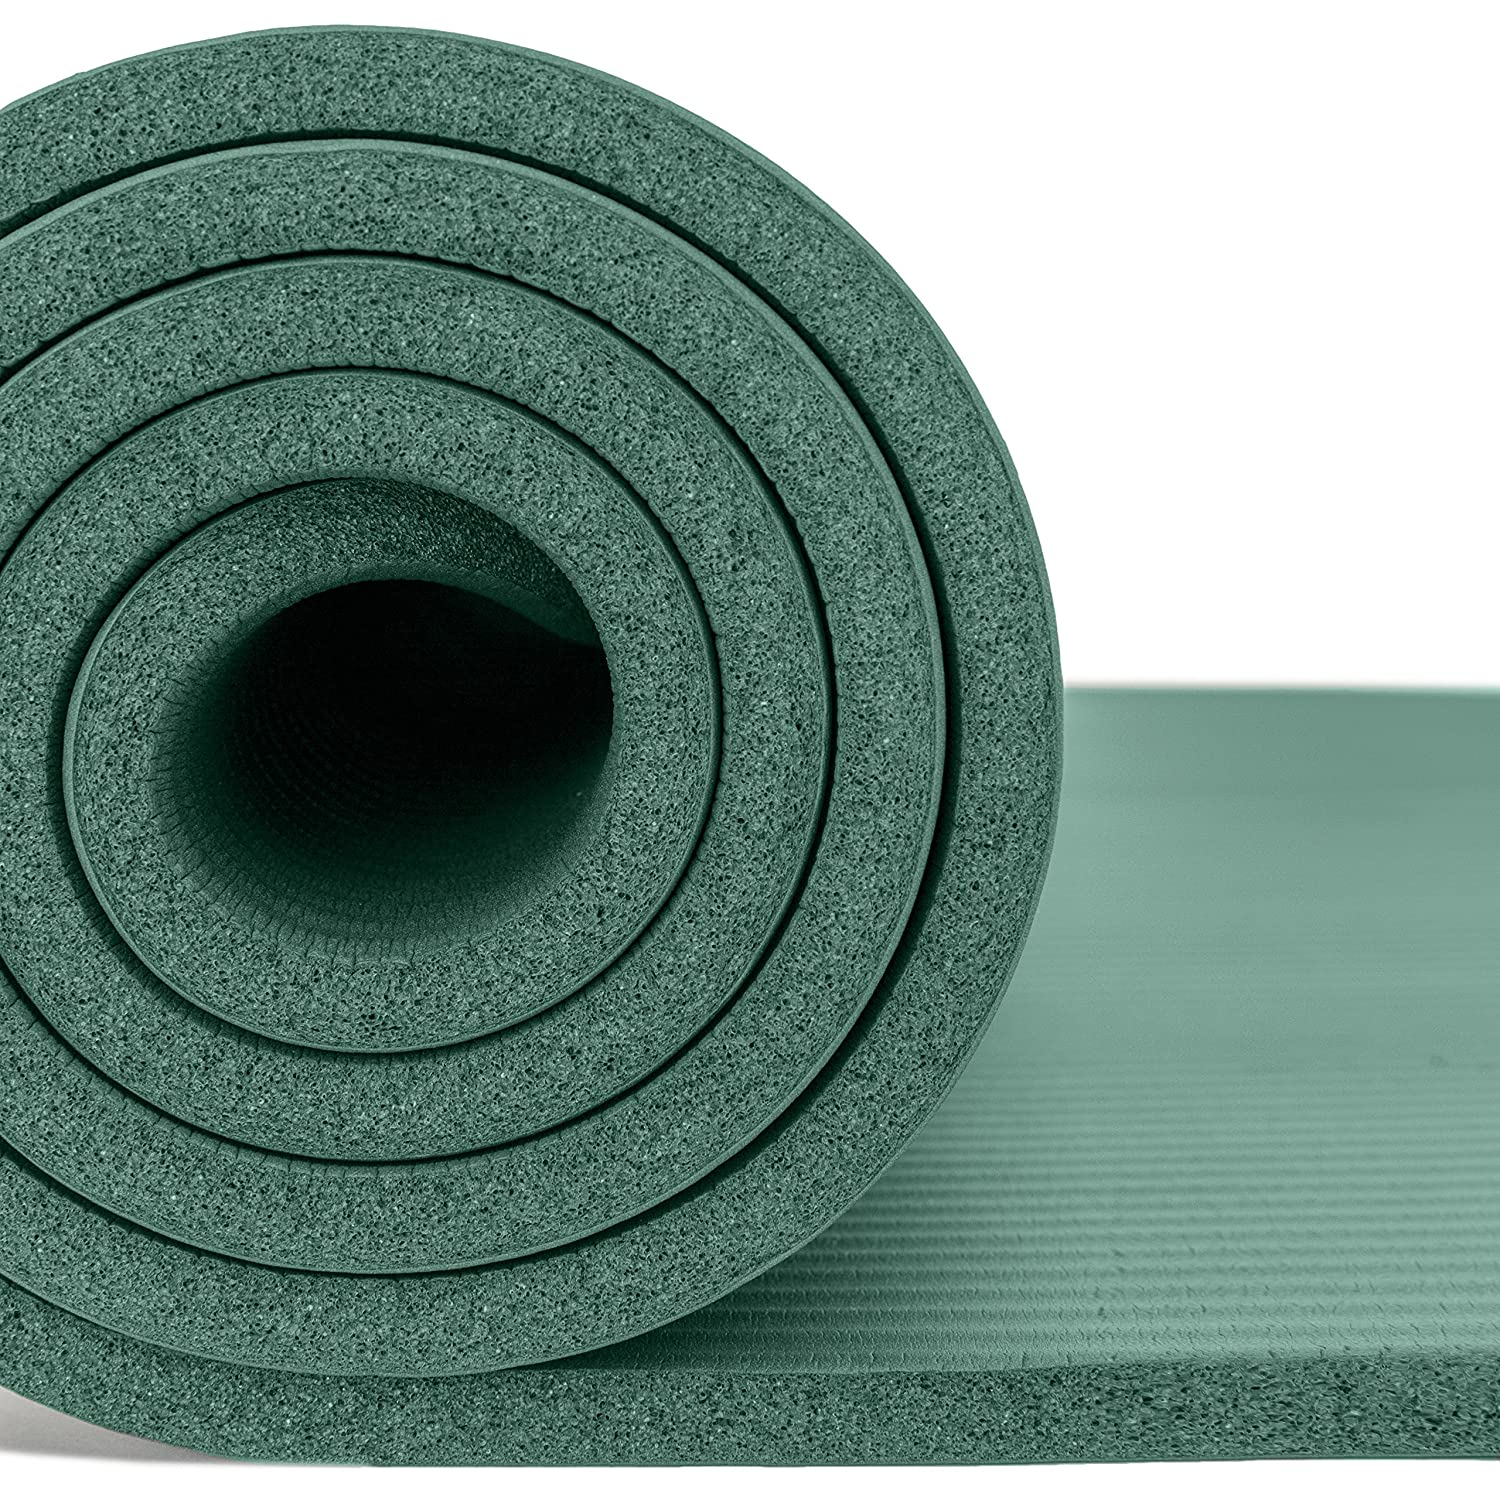 Meditation Non Slip /& Comfortable Workout Mat  For Yoga Floor /& Fitness Exercises Stretching Pilates Incline Fit Extra Thick Exercise Mat w// Carrying Strap